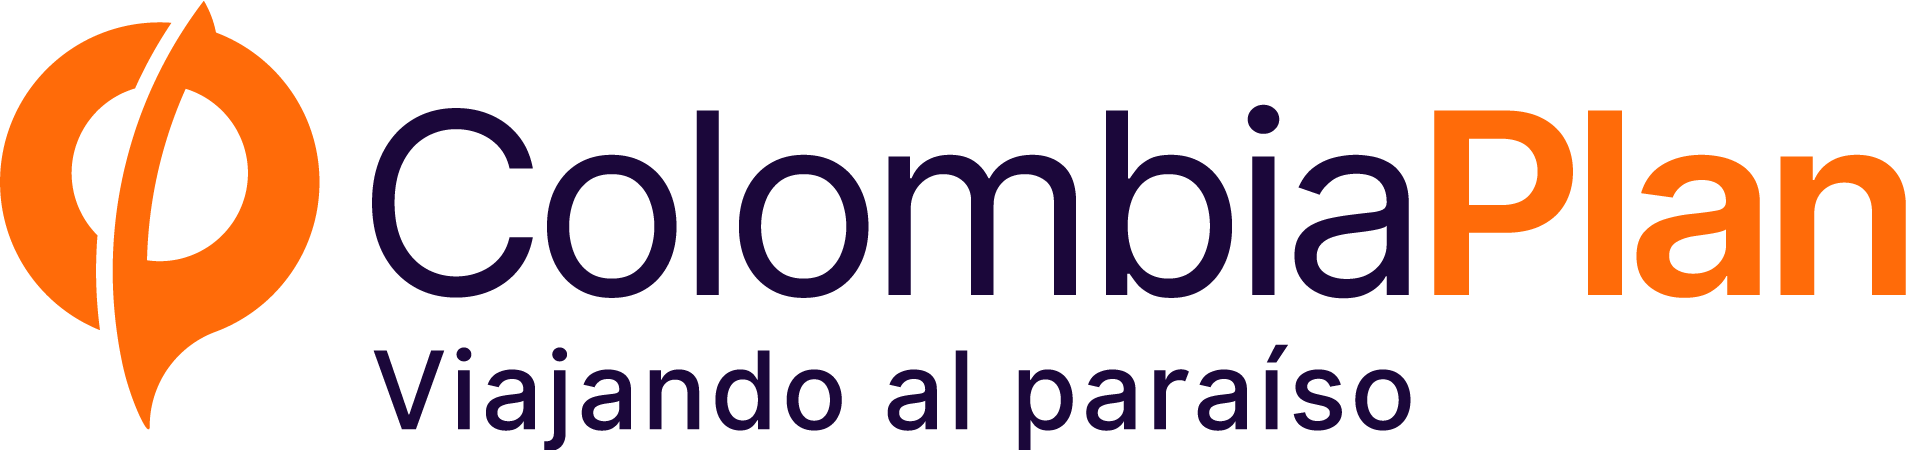 Colombia Plan